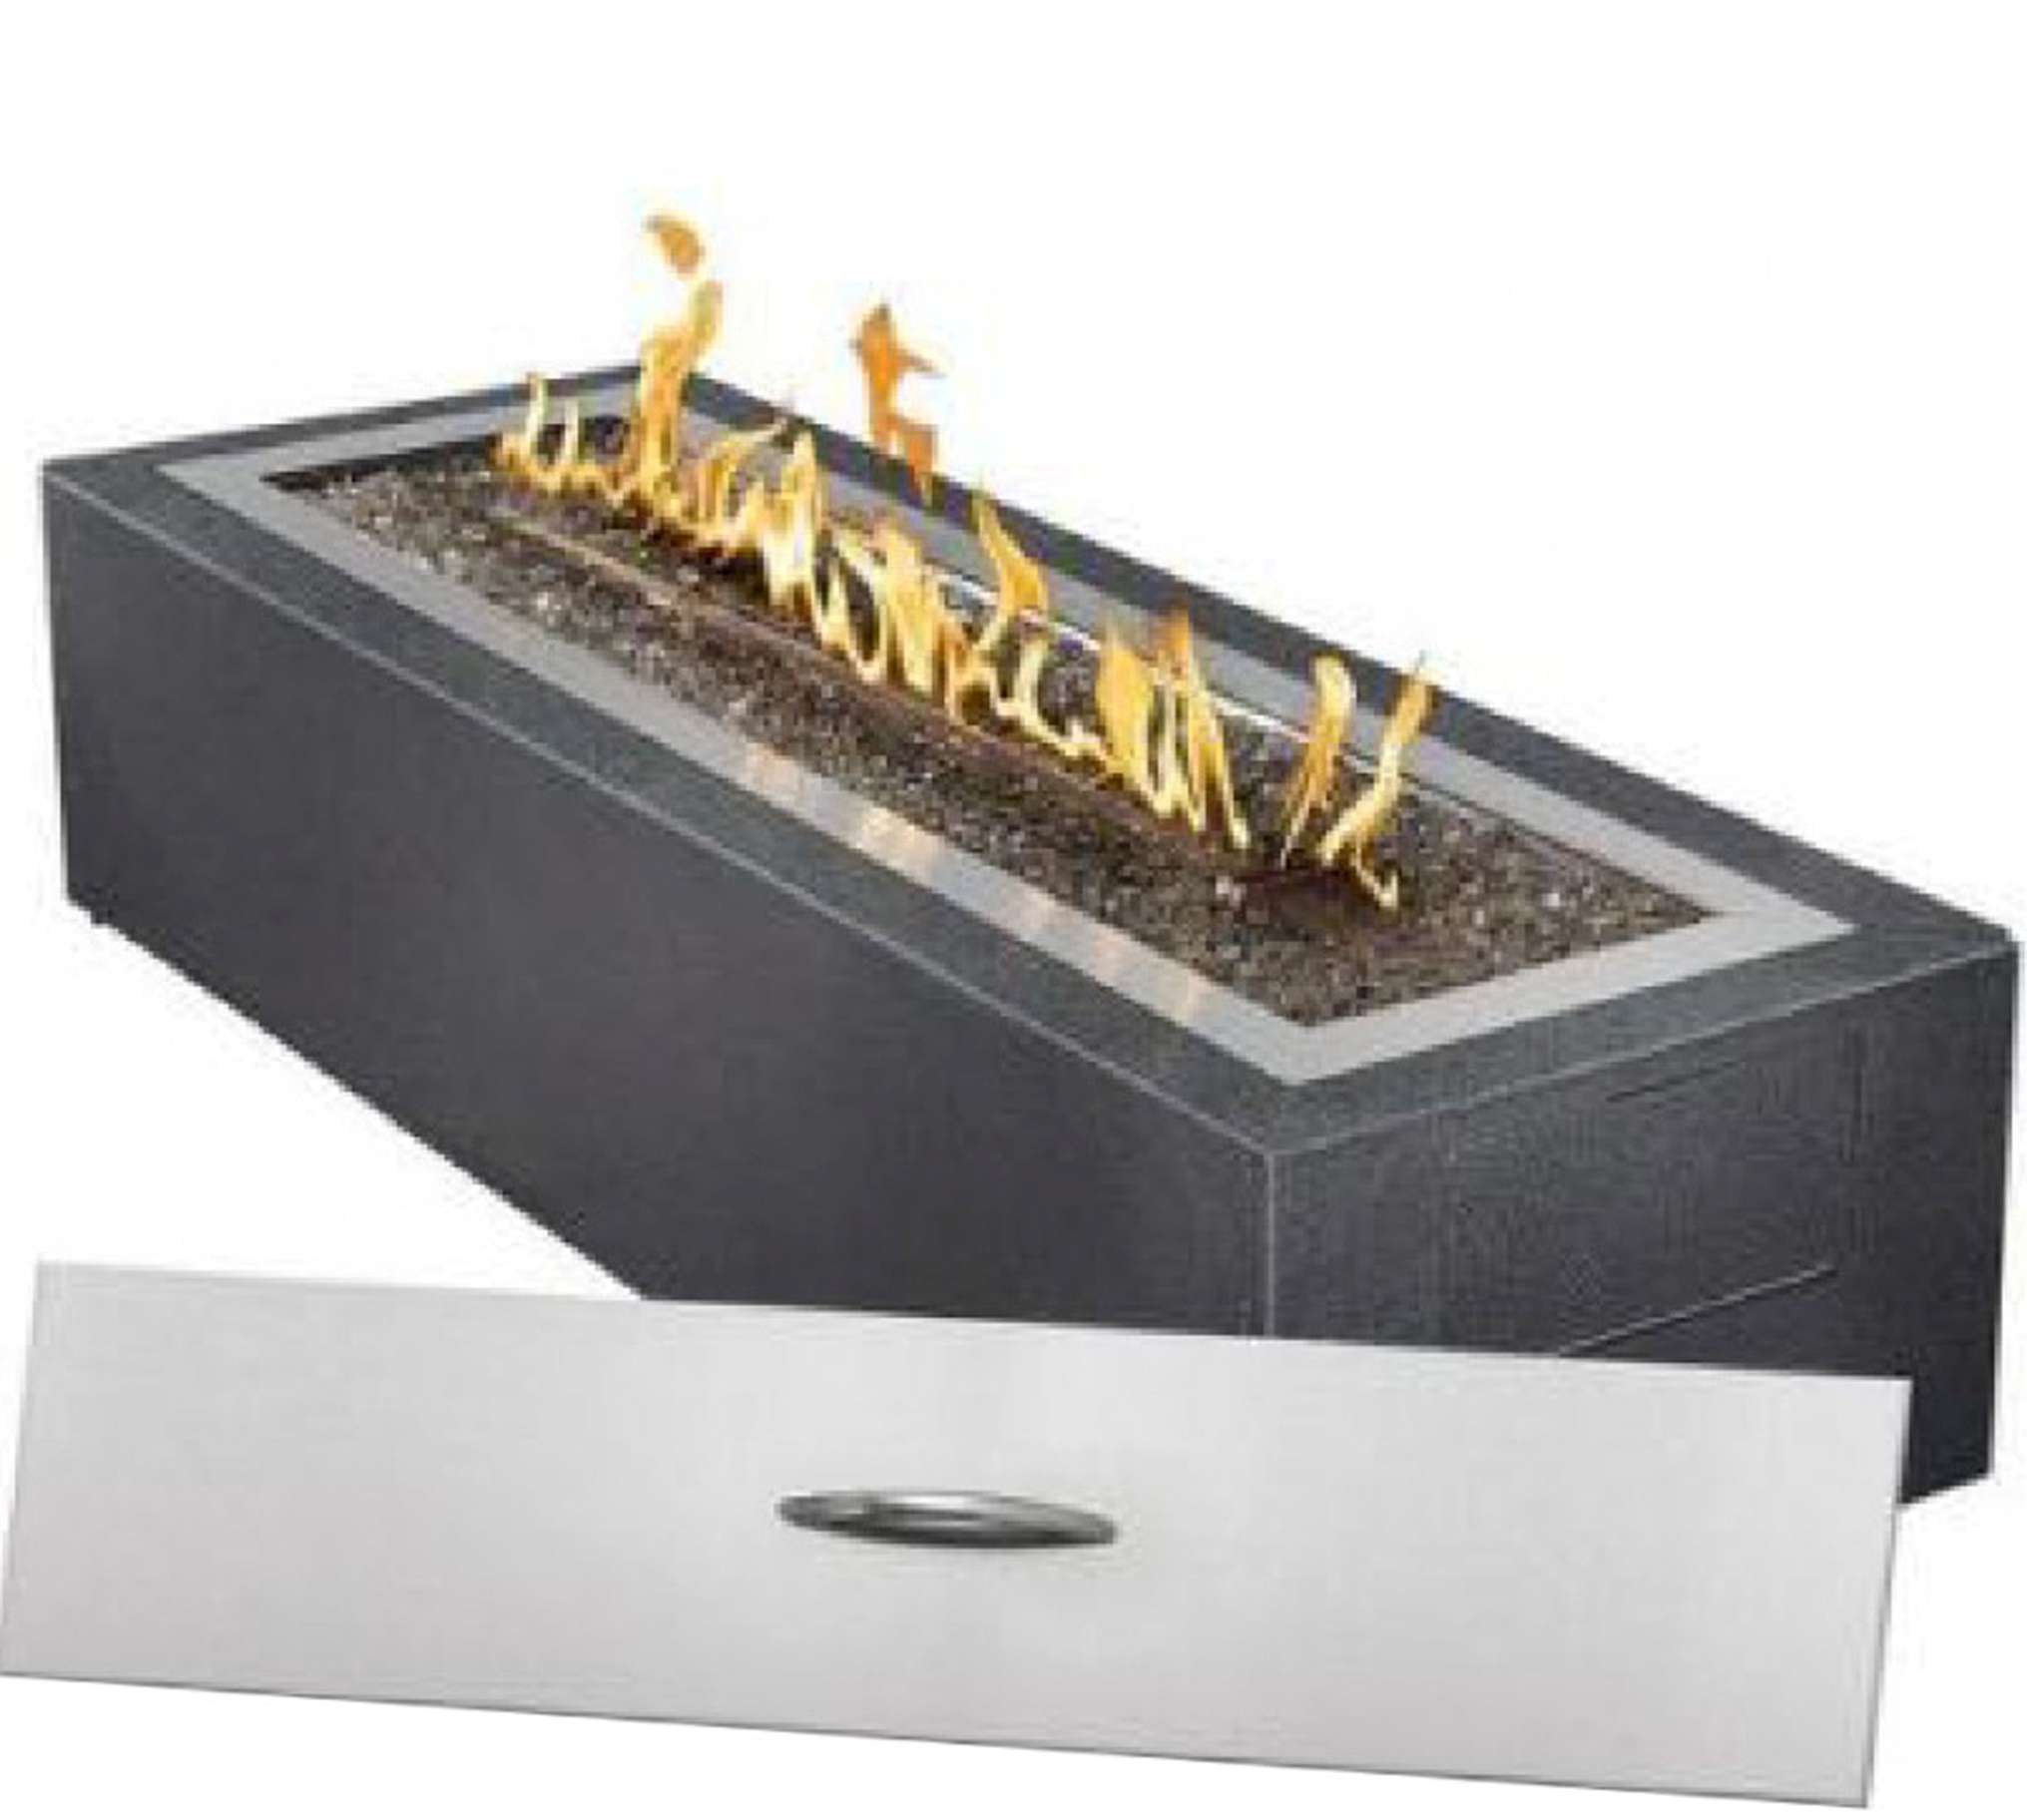 Accessories Exciting Furniture For Outdoor Living Room Decoration Using Rectangular Dark Grey Modern Gas Fire Pit Modern Gas Fire Pit For Your Outdoor And Backyard Decor (Image 4 of 28)